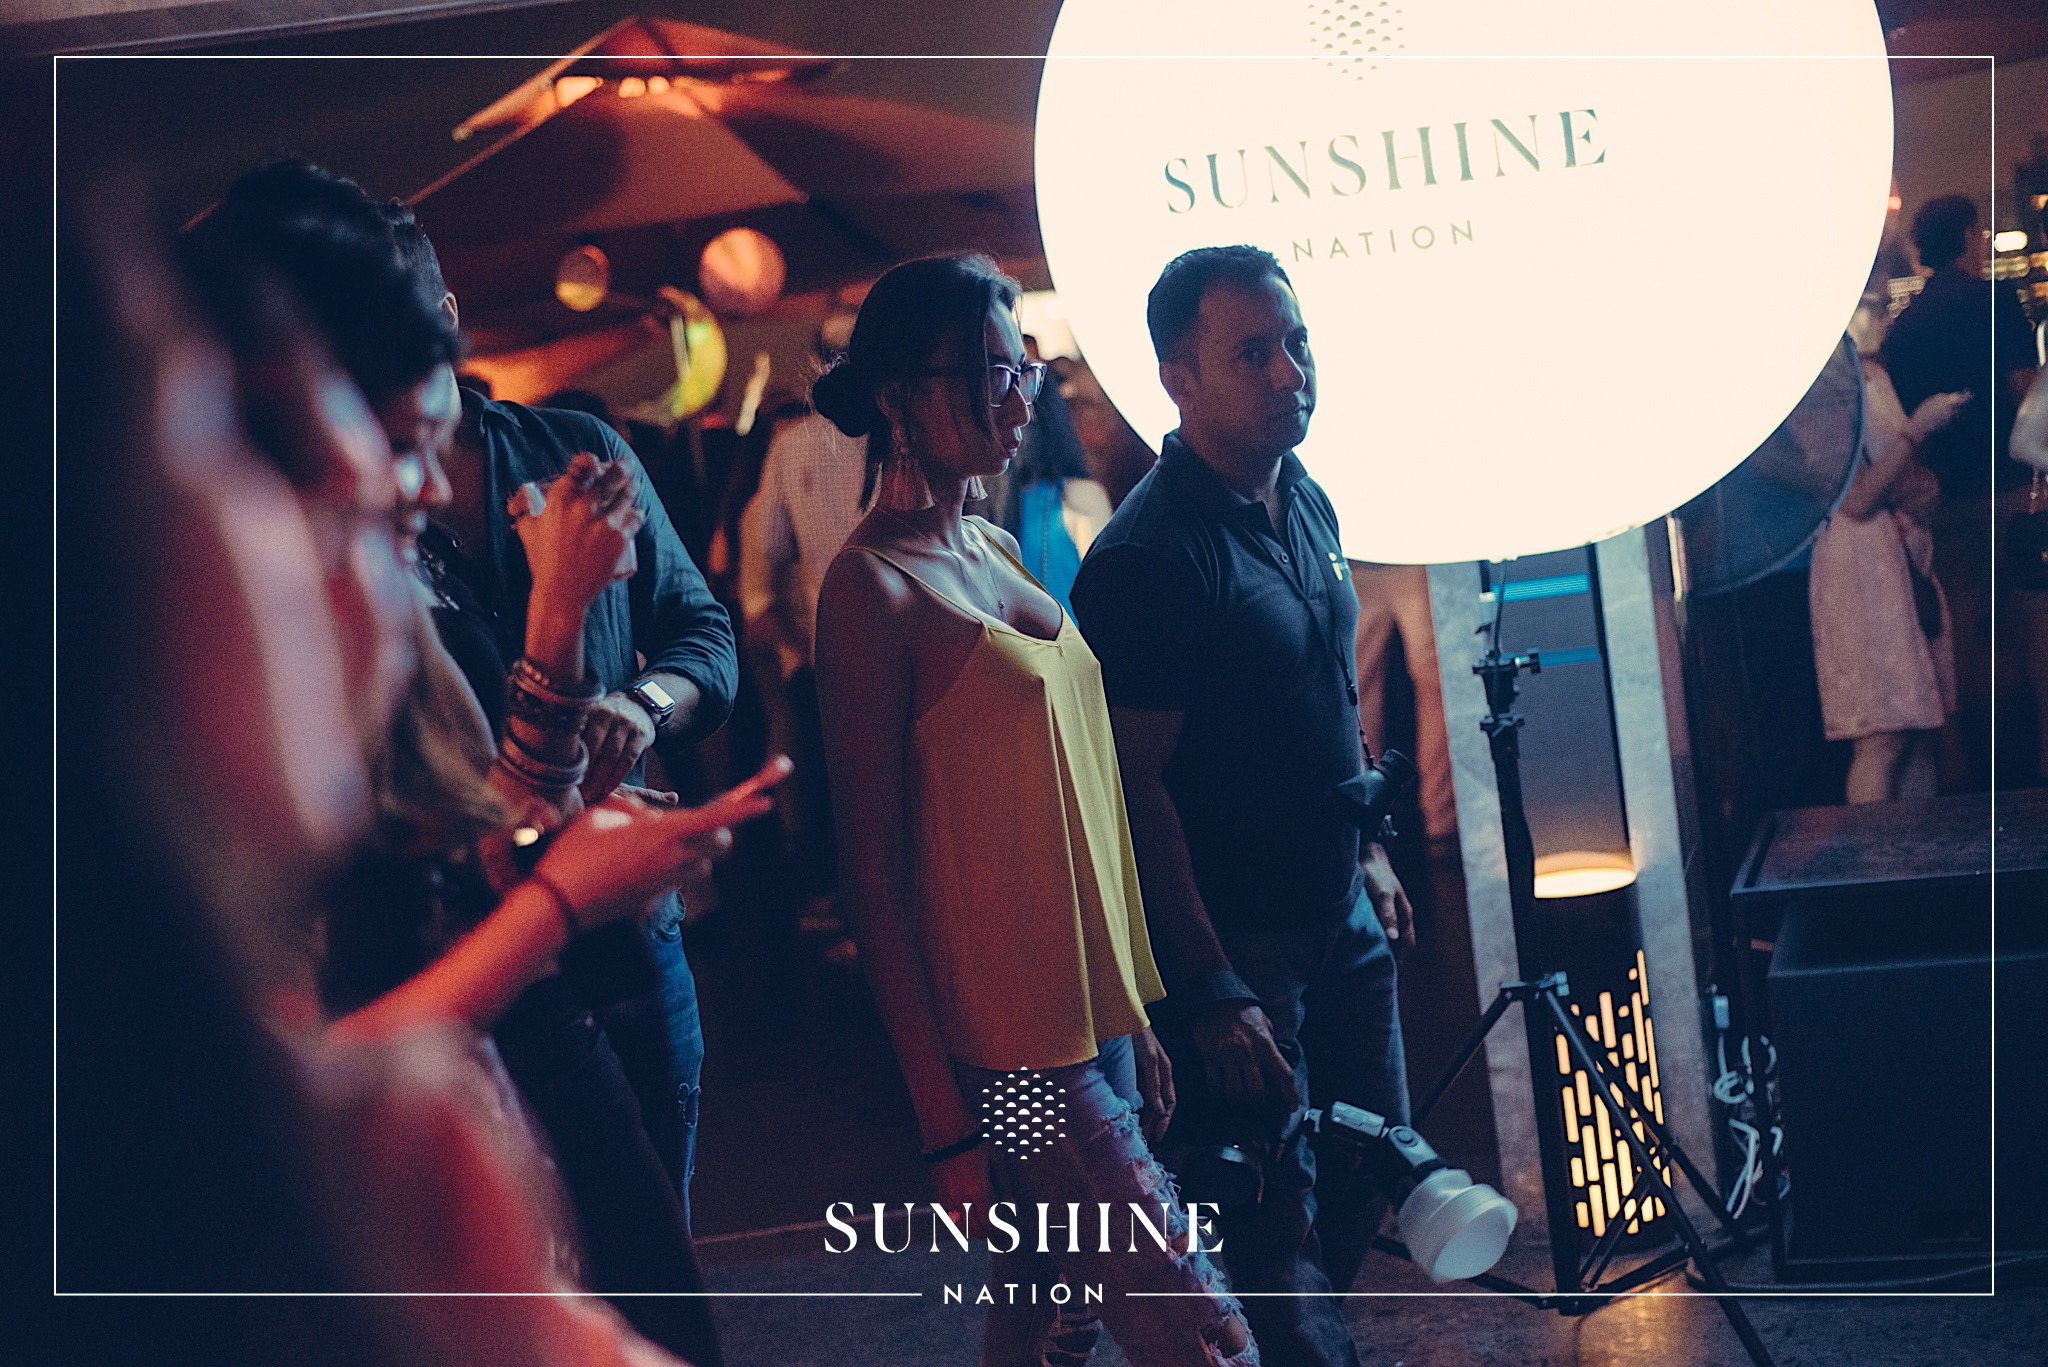 17092017_SunshineNation_Colossal113_Watermarked.jpg